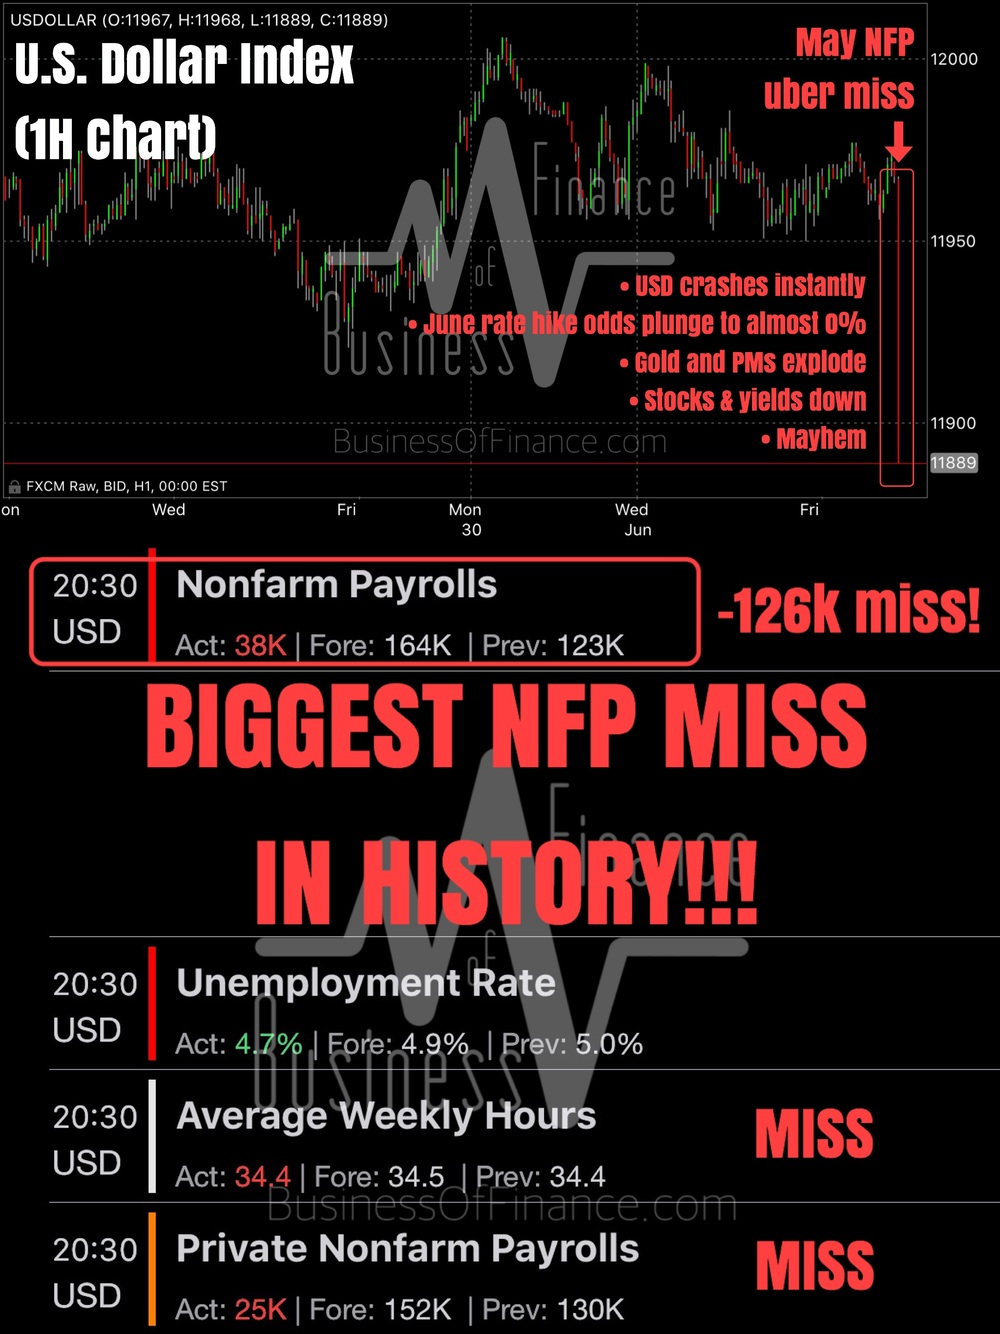 """BIGGEST NFP MISS IN HISTORY! No one expected this even in their wildest most evil dreams! May NFP printed a mere +38,000 vs. expectations of +164,000, and down from April's already miserable +123,000 (revised lower from +160,000)!    Everything else missed or was inline at best. Only the U3 unemployment rate beat by falling to 4.7% vs. expectations of 4.9% and down from April's 5%, but this was due to massive shrinkage in the labor force (participation rate fell once again).    The USD is down sharply against all currencies, and precious metals (gold, silver, ect...) are surging. More updates to come.    Post the epic disaster that was the May NFP report, the greenback is down sharply, and is almost technically back in its bear market. All details included in our charts.    One thing is almost certain: No one in their right mind will be expecting the Fed to hike in June. Rate hike odds crash to nearly 0% again...    Who's having fun on this see-saw?""    Business Of Finance on Facebook, 3 June 2016"